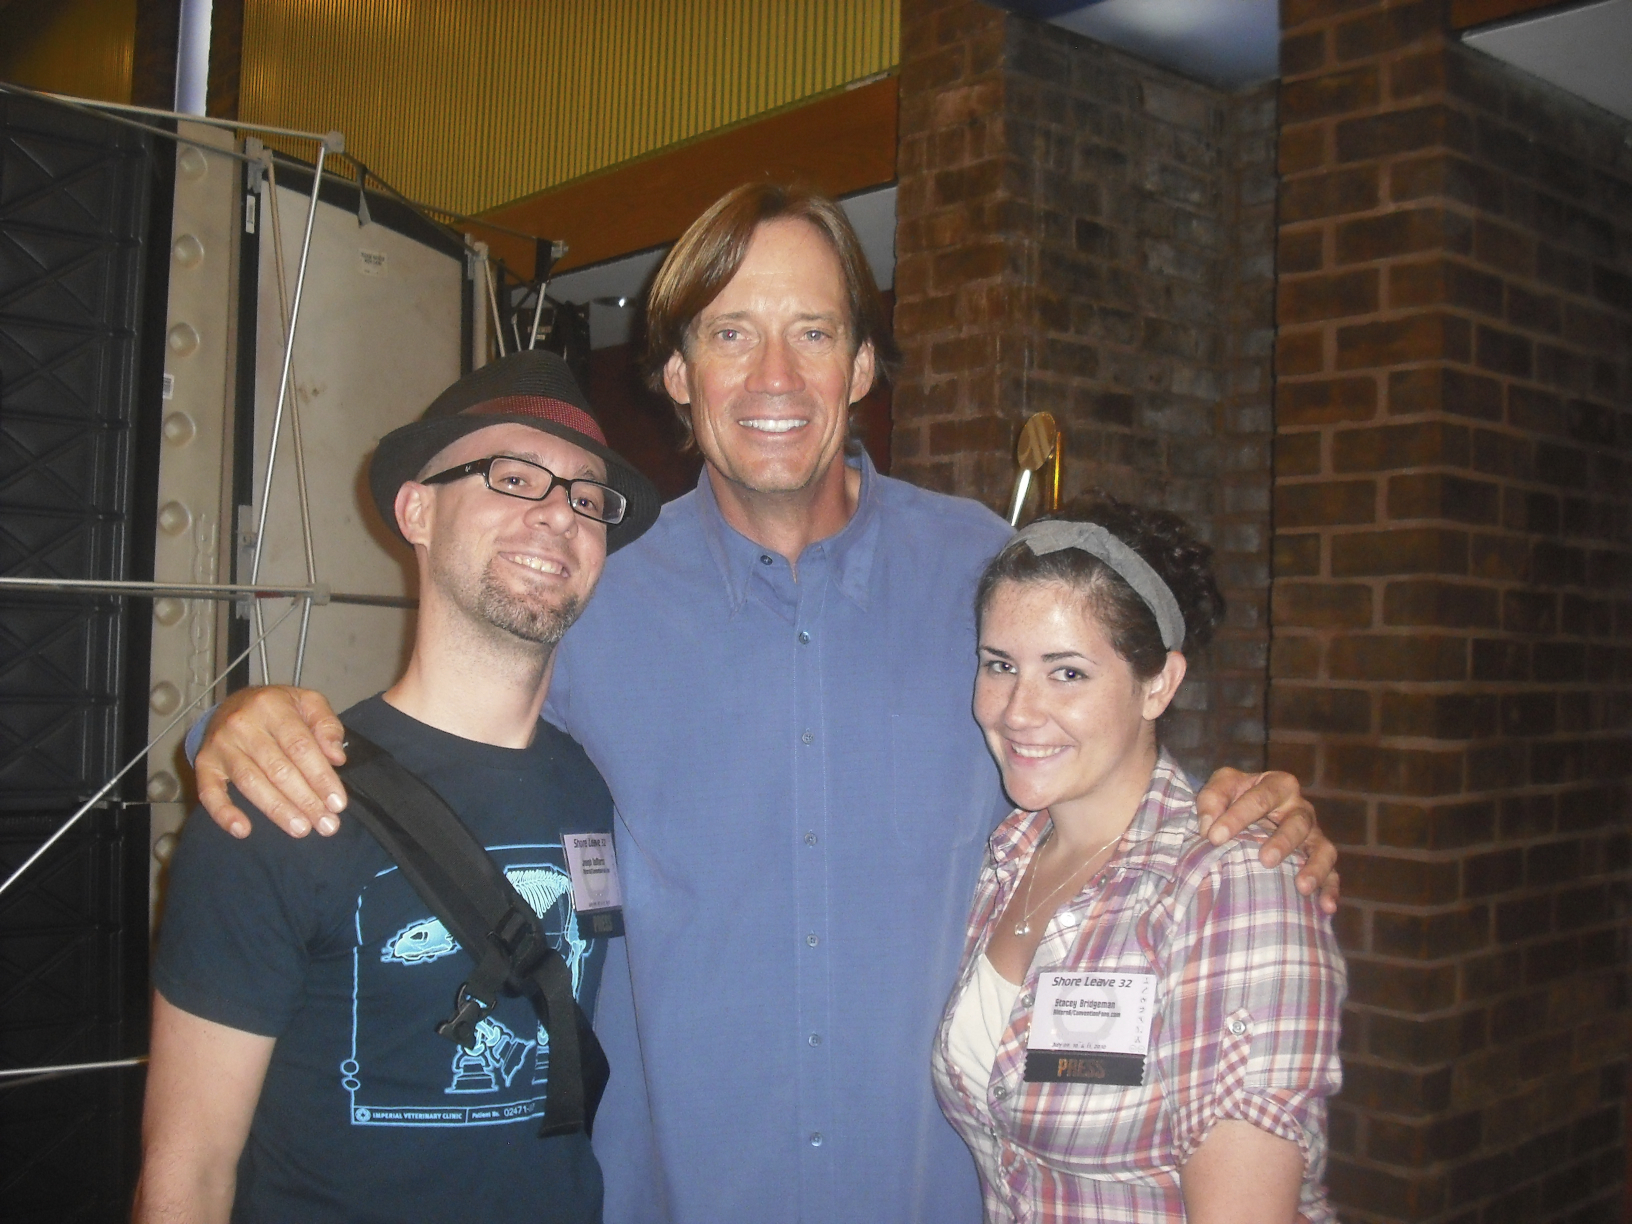 Stacey, Joey, and Kevin Sorbo at Shore Leave 32, photo courtesy Joey DeMarco (all rights reserved)